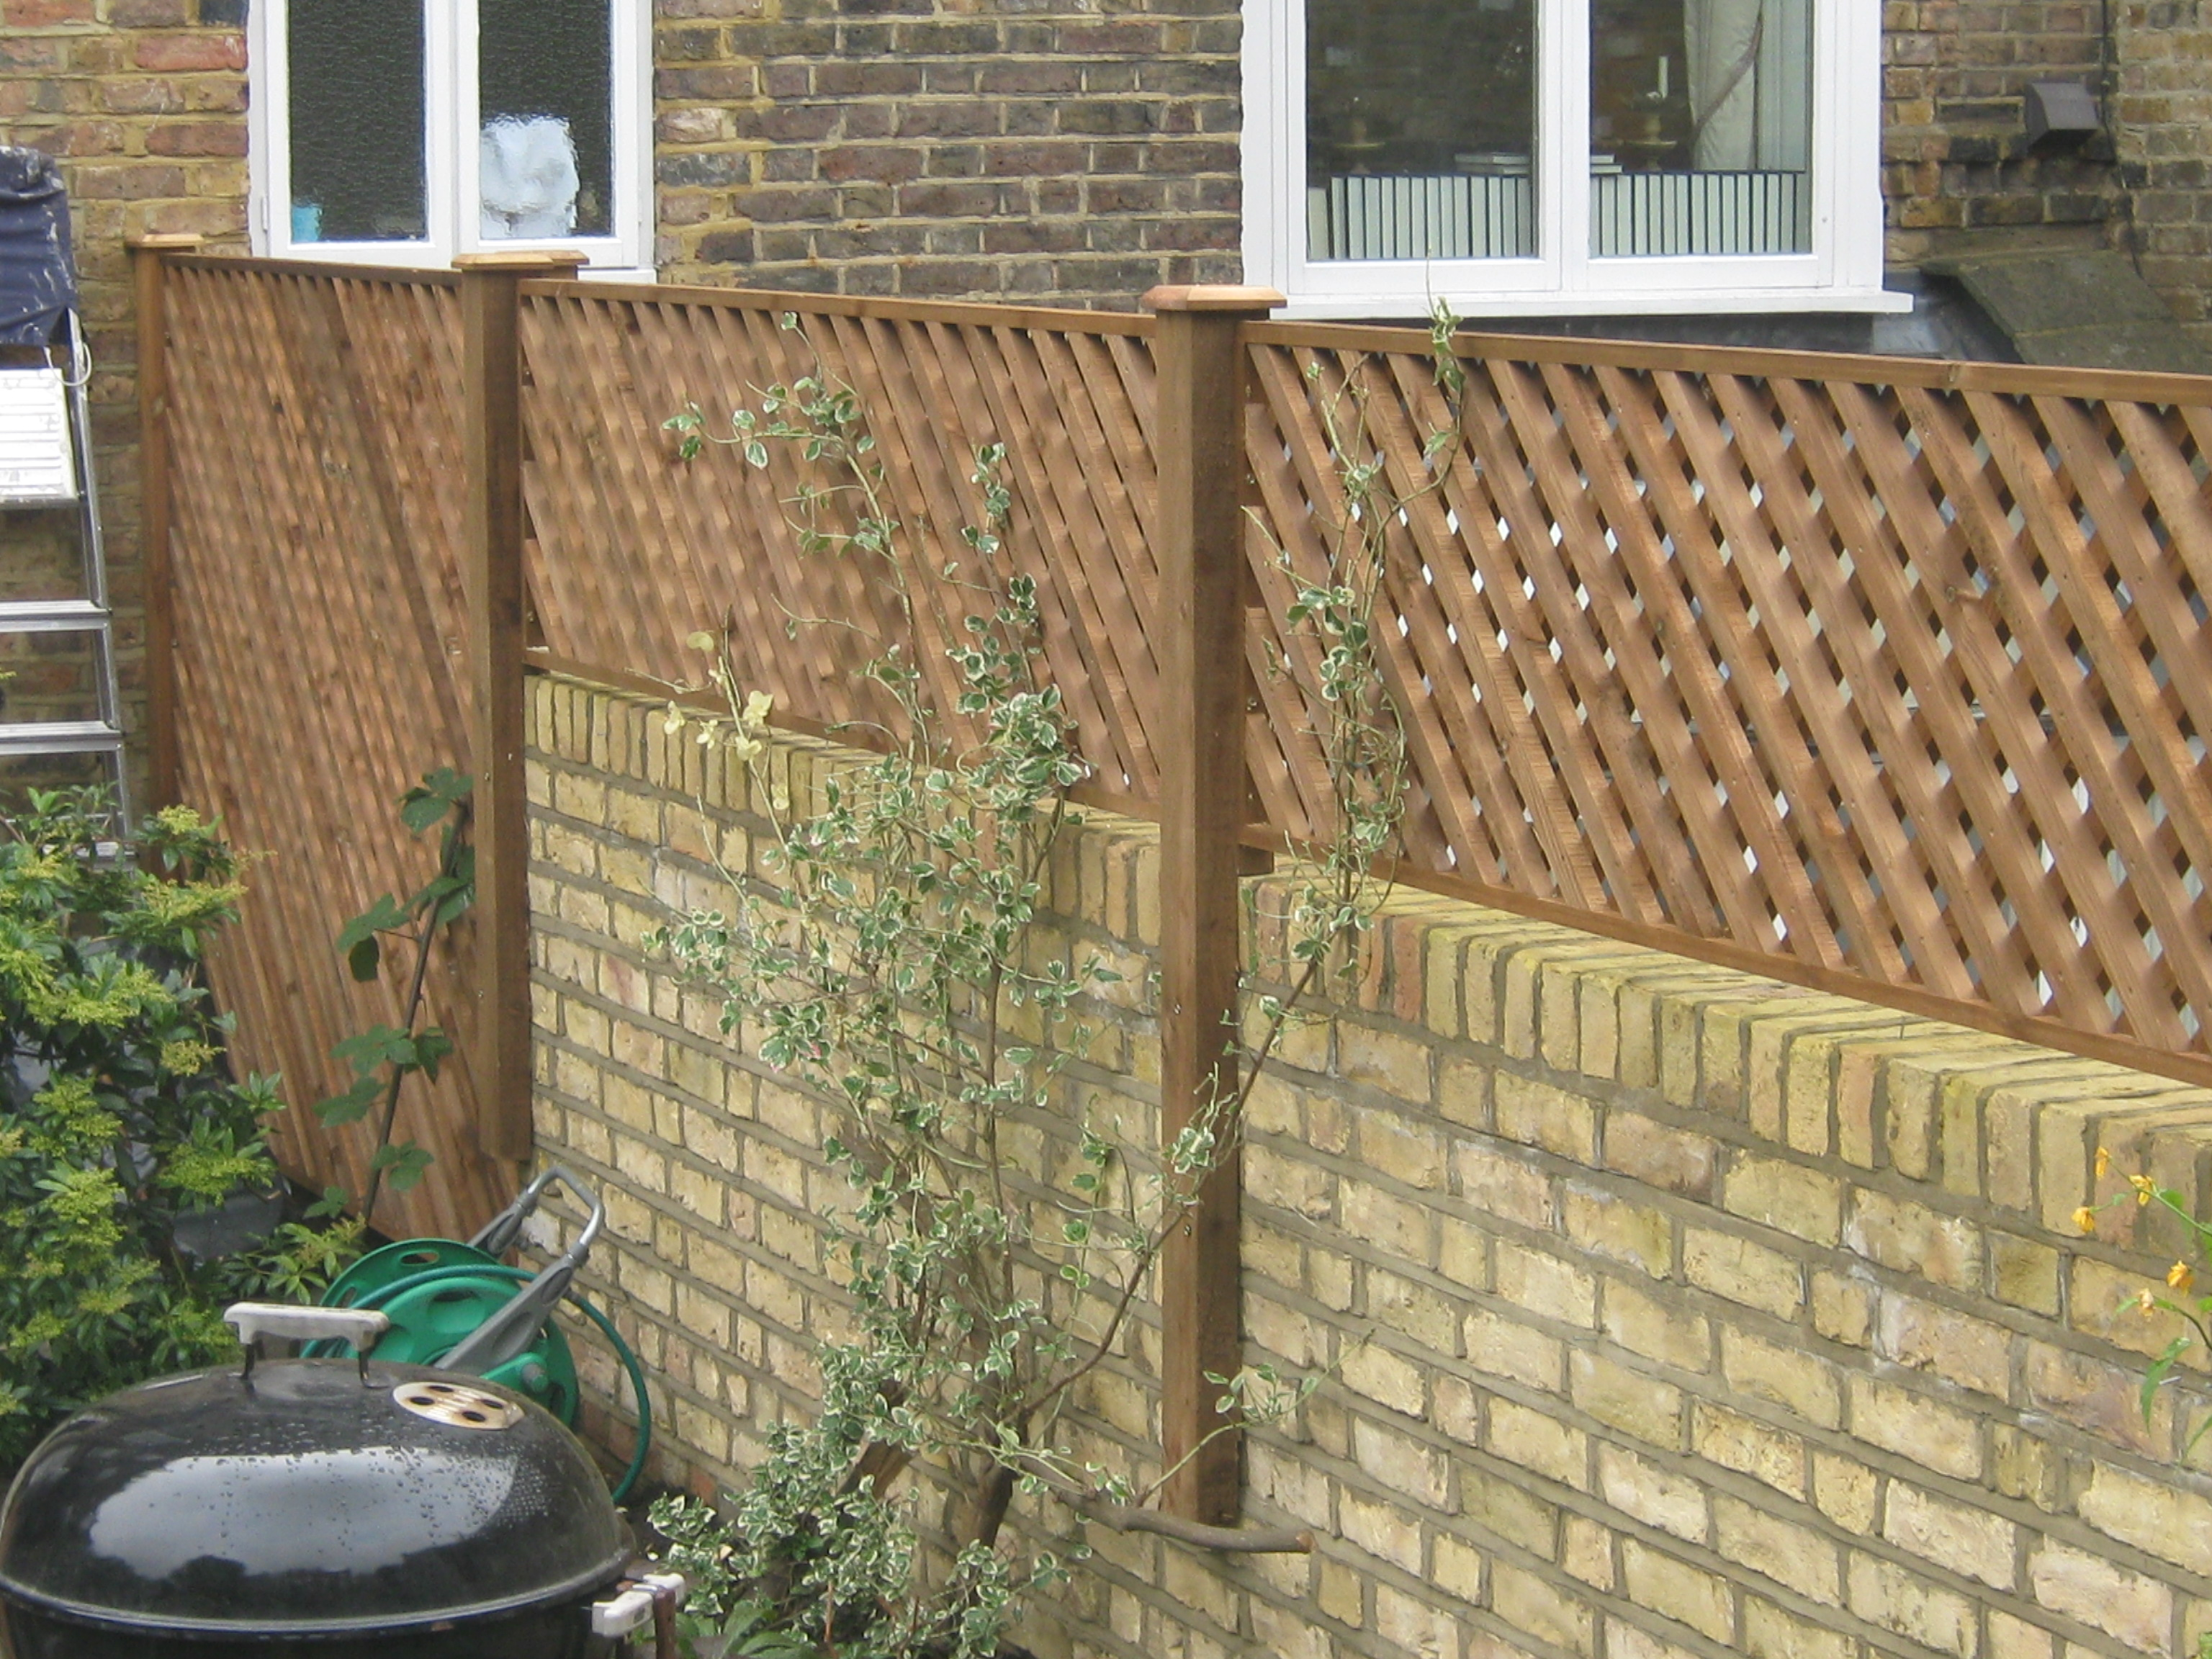 Wall top lattice trellis